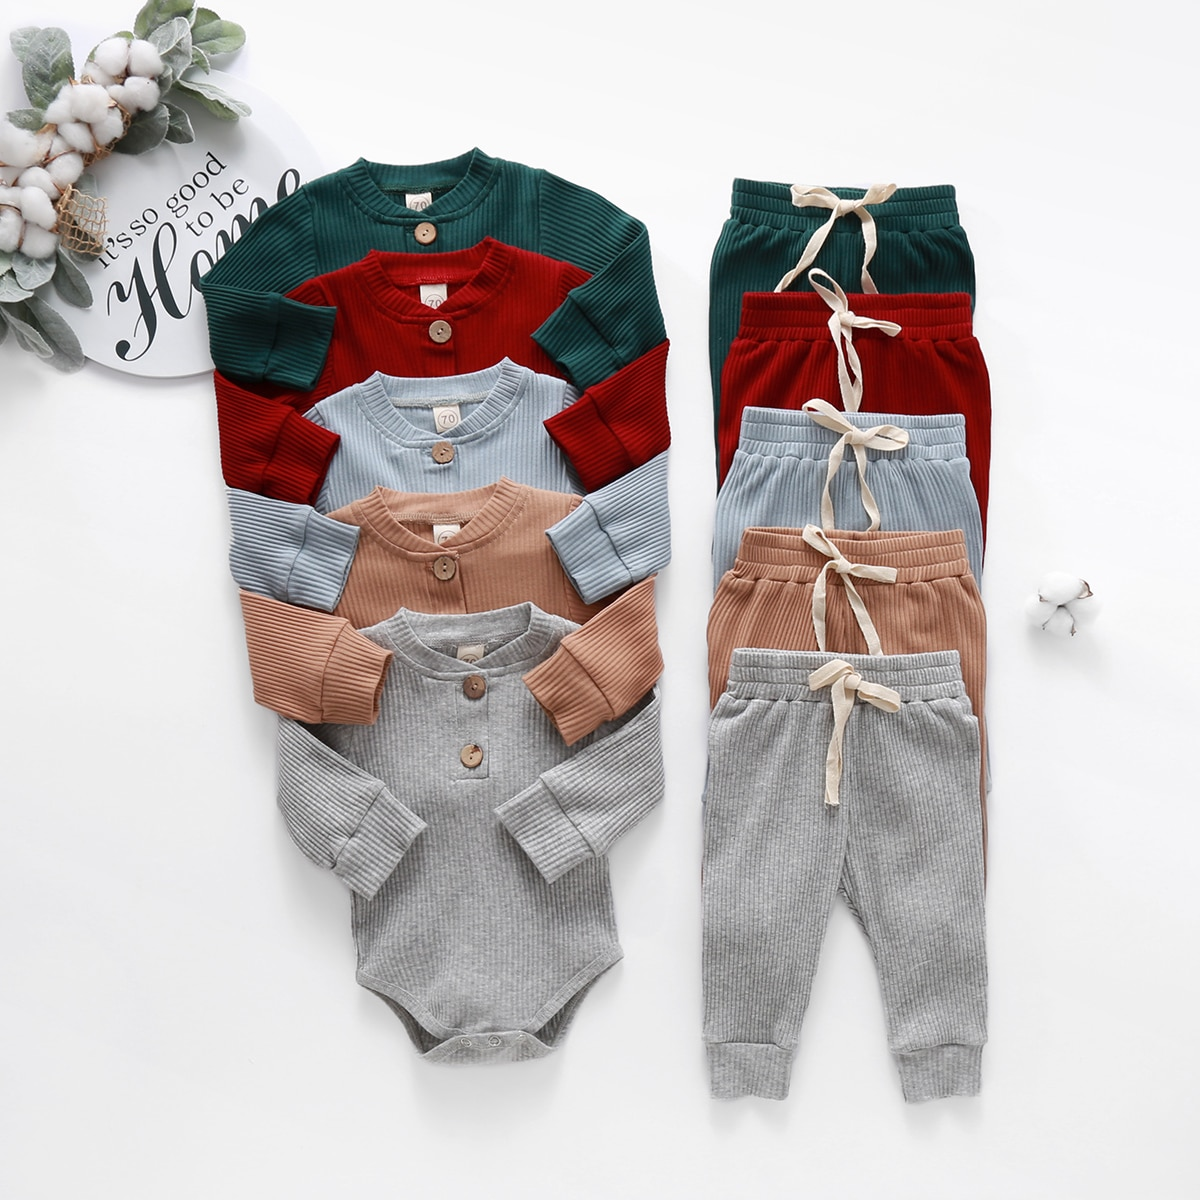 Baby Solid Clothes Long Sleeve Romper and Pants Set | Get Now Fast |